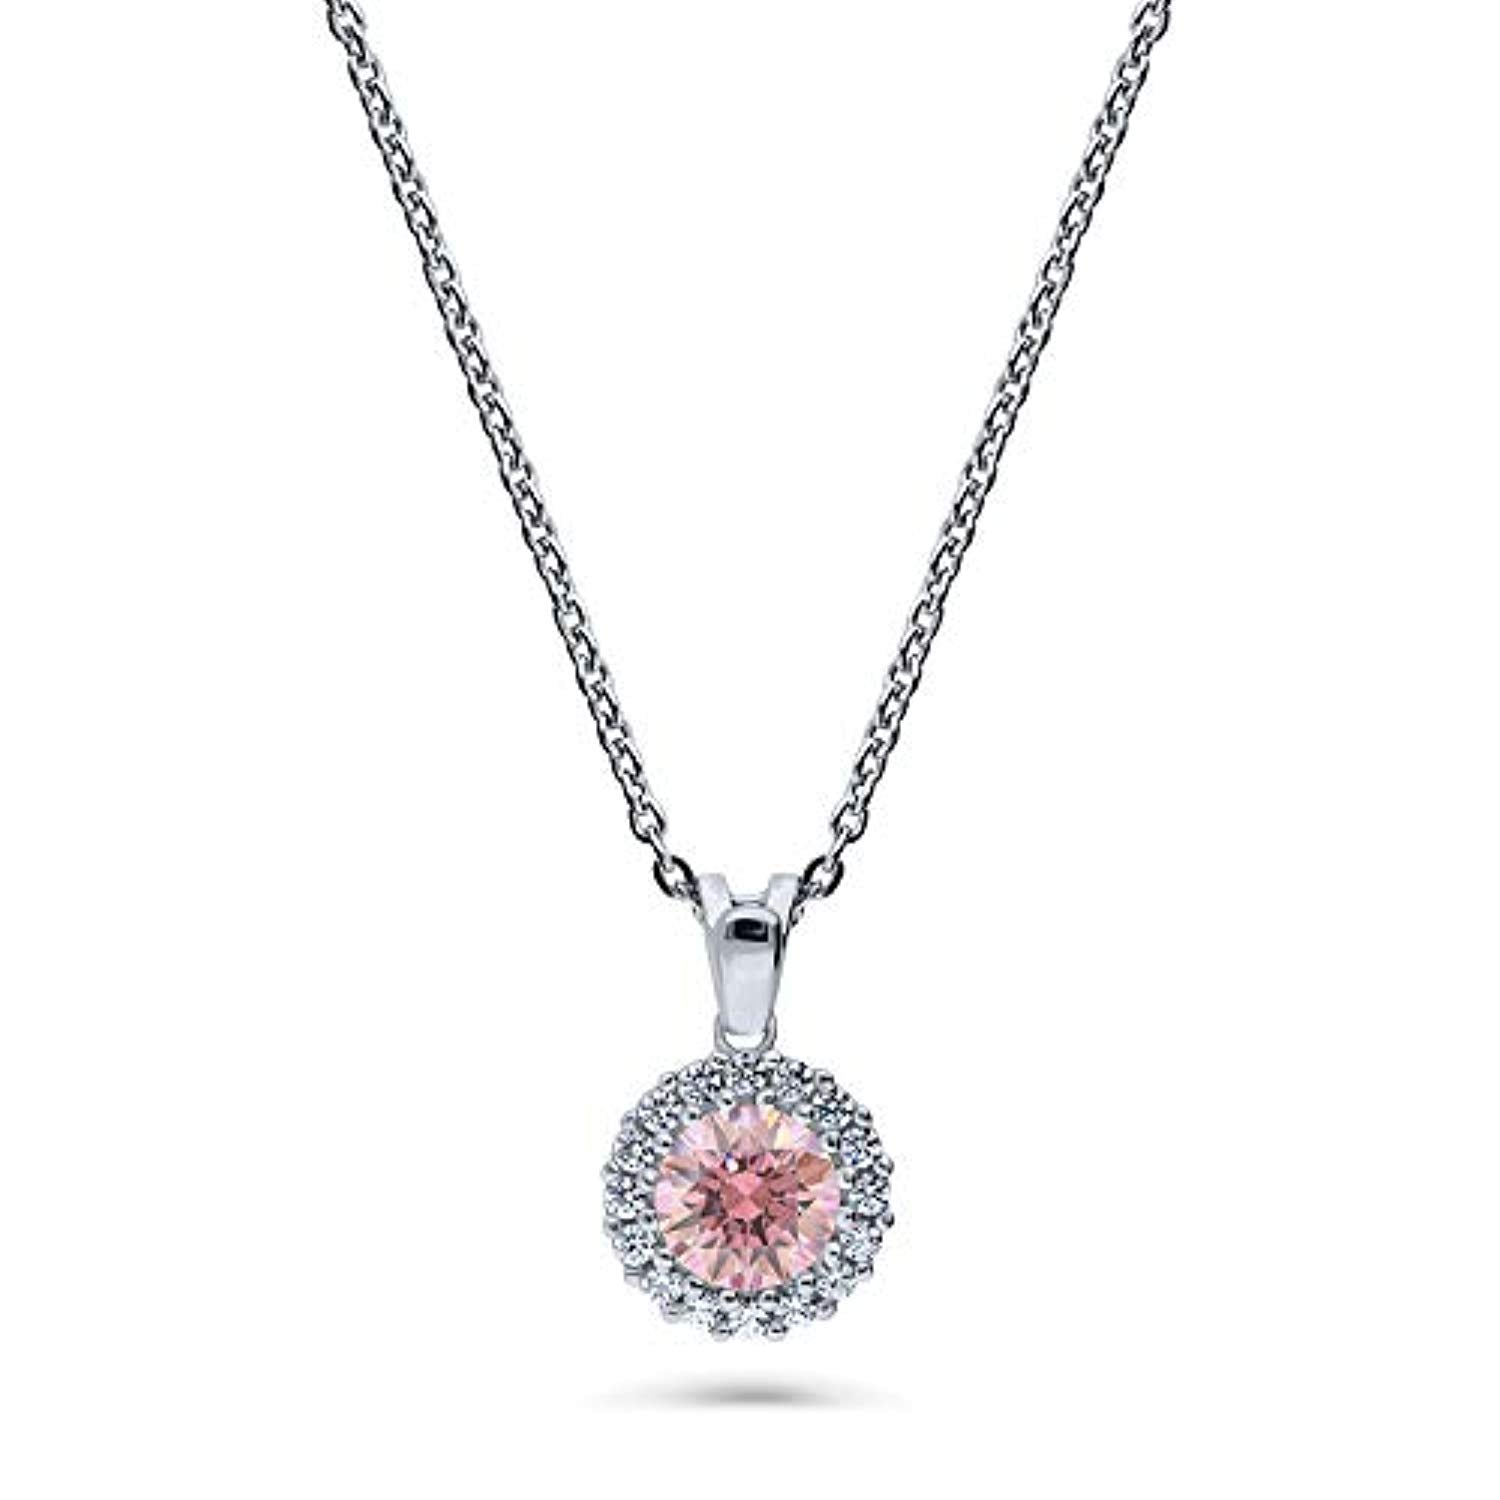 Rhodium Plated Sterling Silver Halo Anniversary Wedding Pendant Necklace Made with Swarovski Zirconia Morganite Color Round